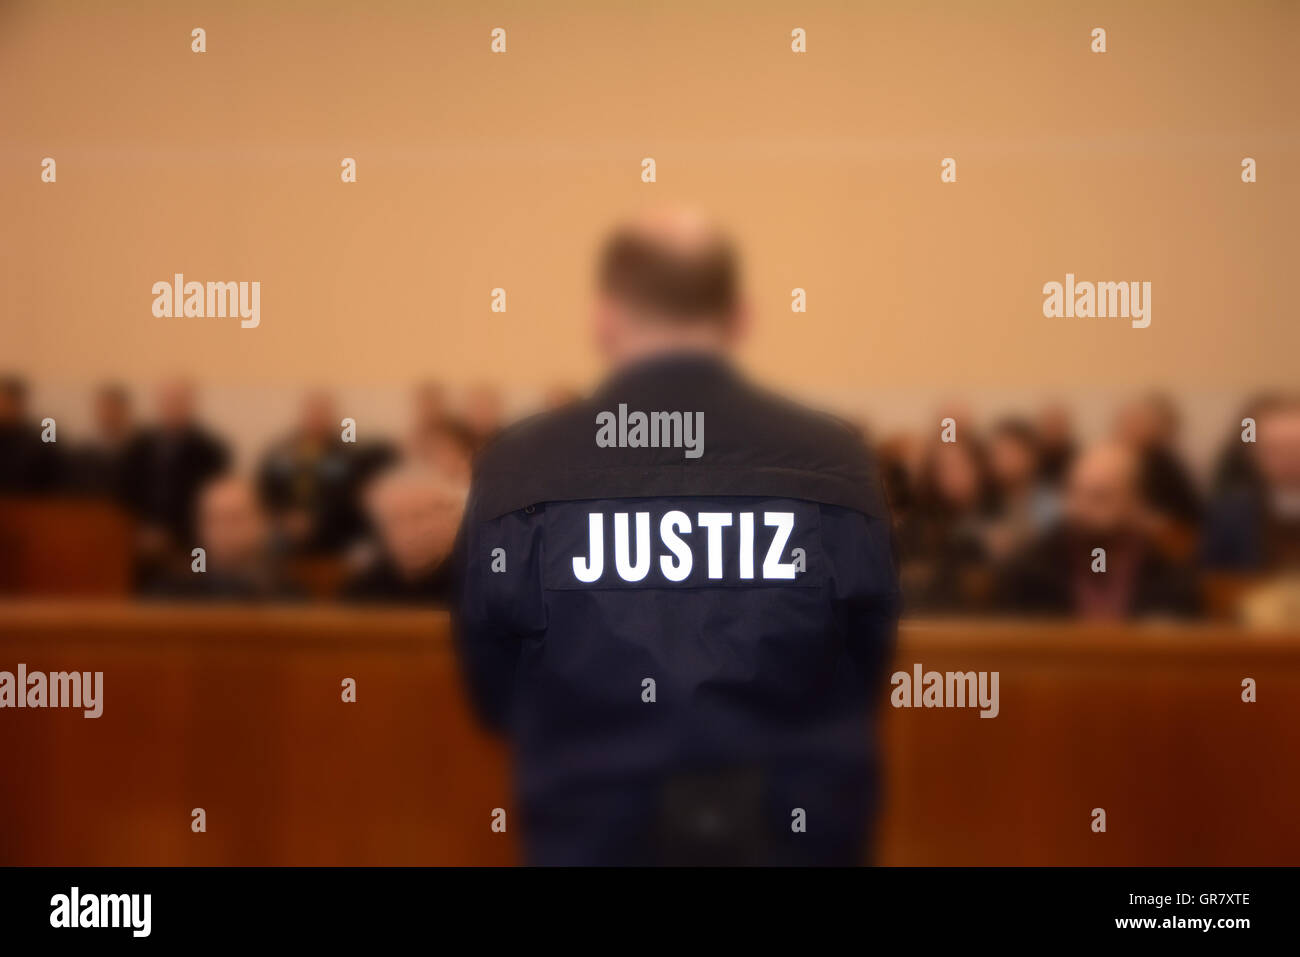 Policeman And Many People In A Courtroom - Stock Image